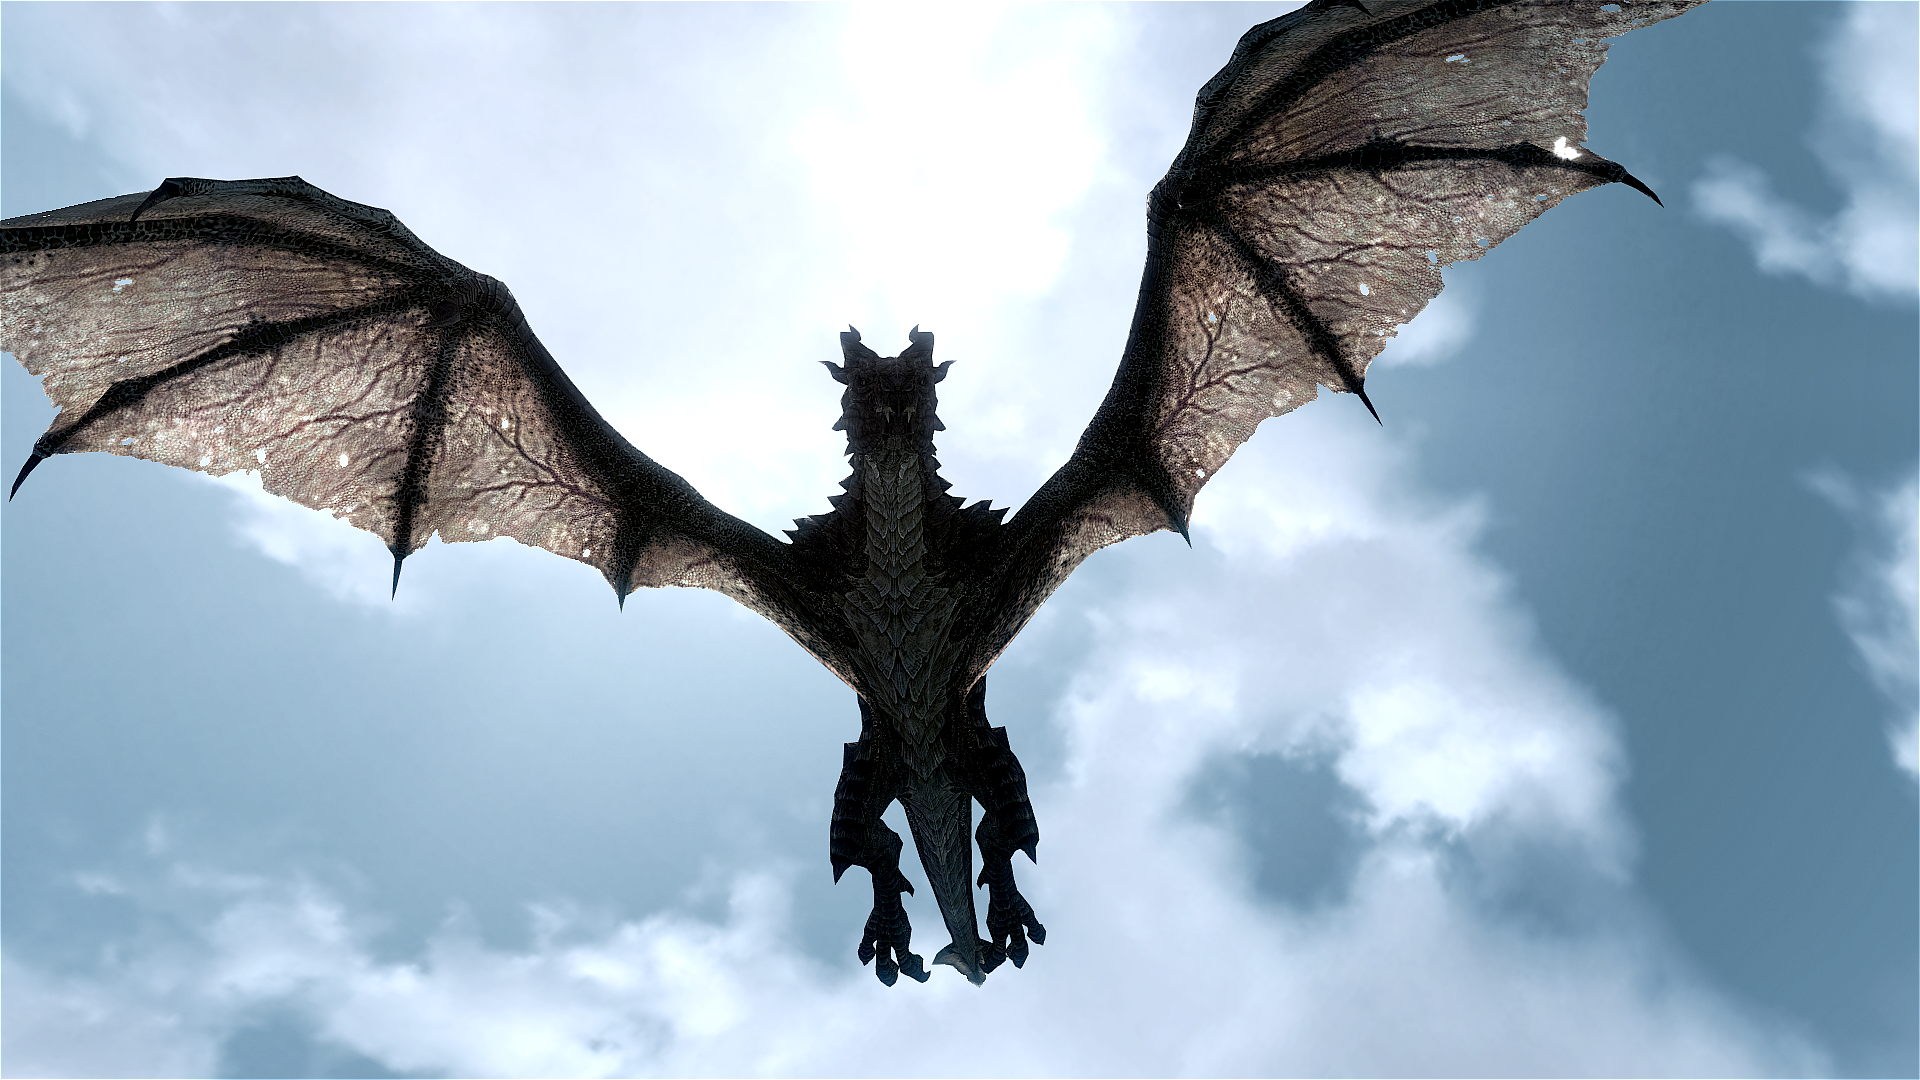 In the clouds flying dragon wallpapers and images 1920x1080